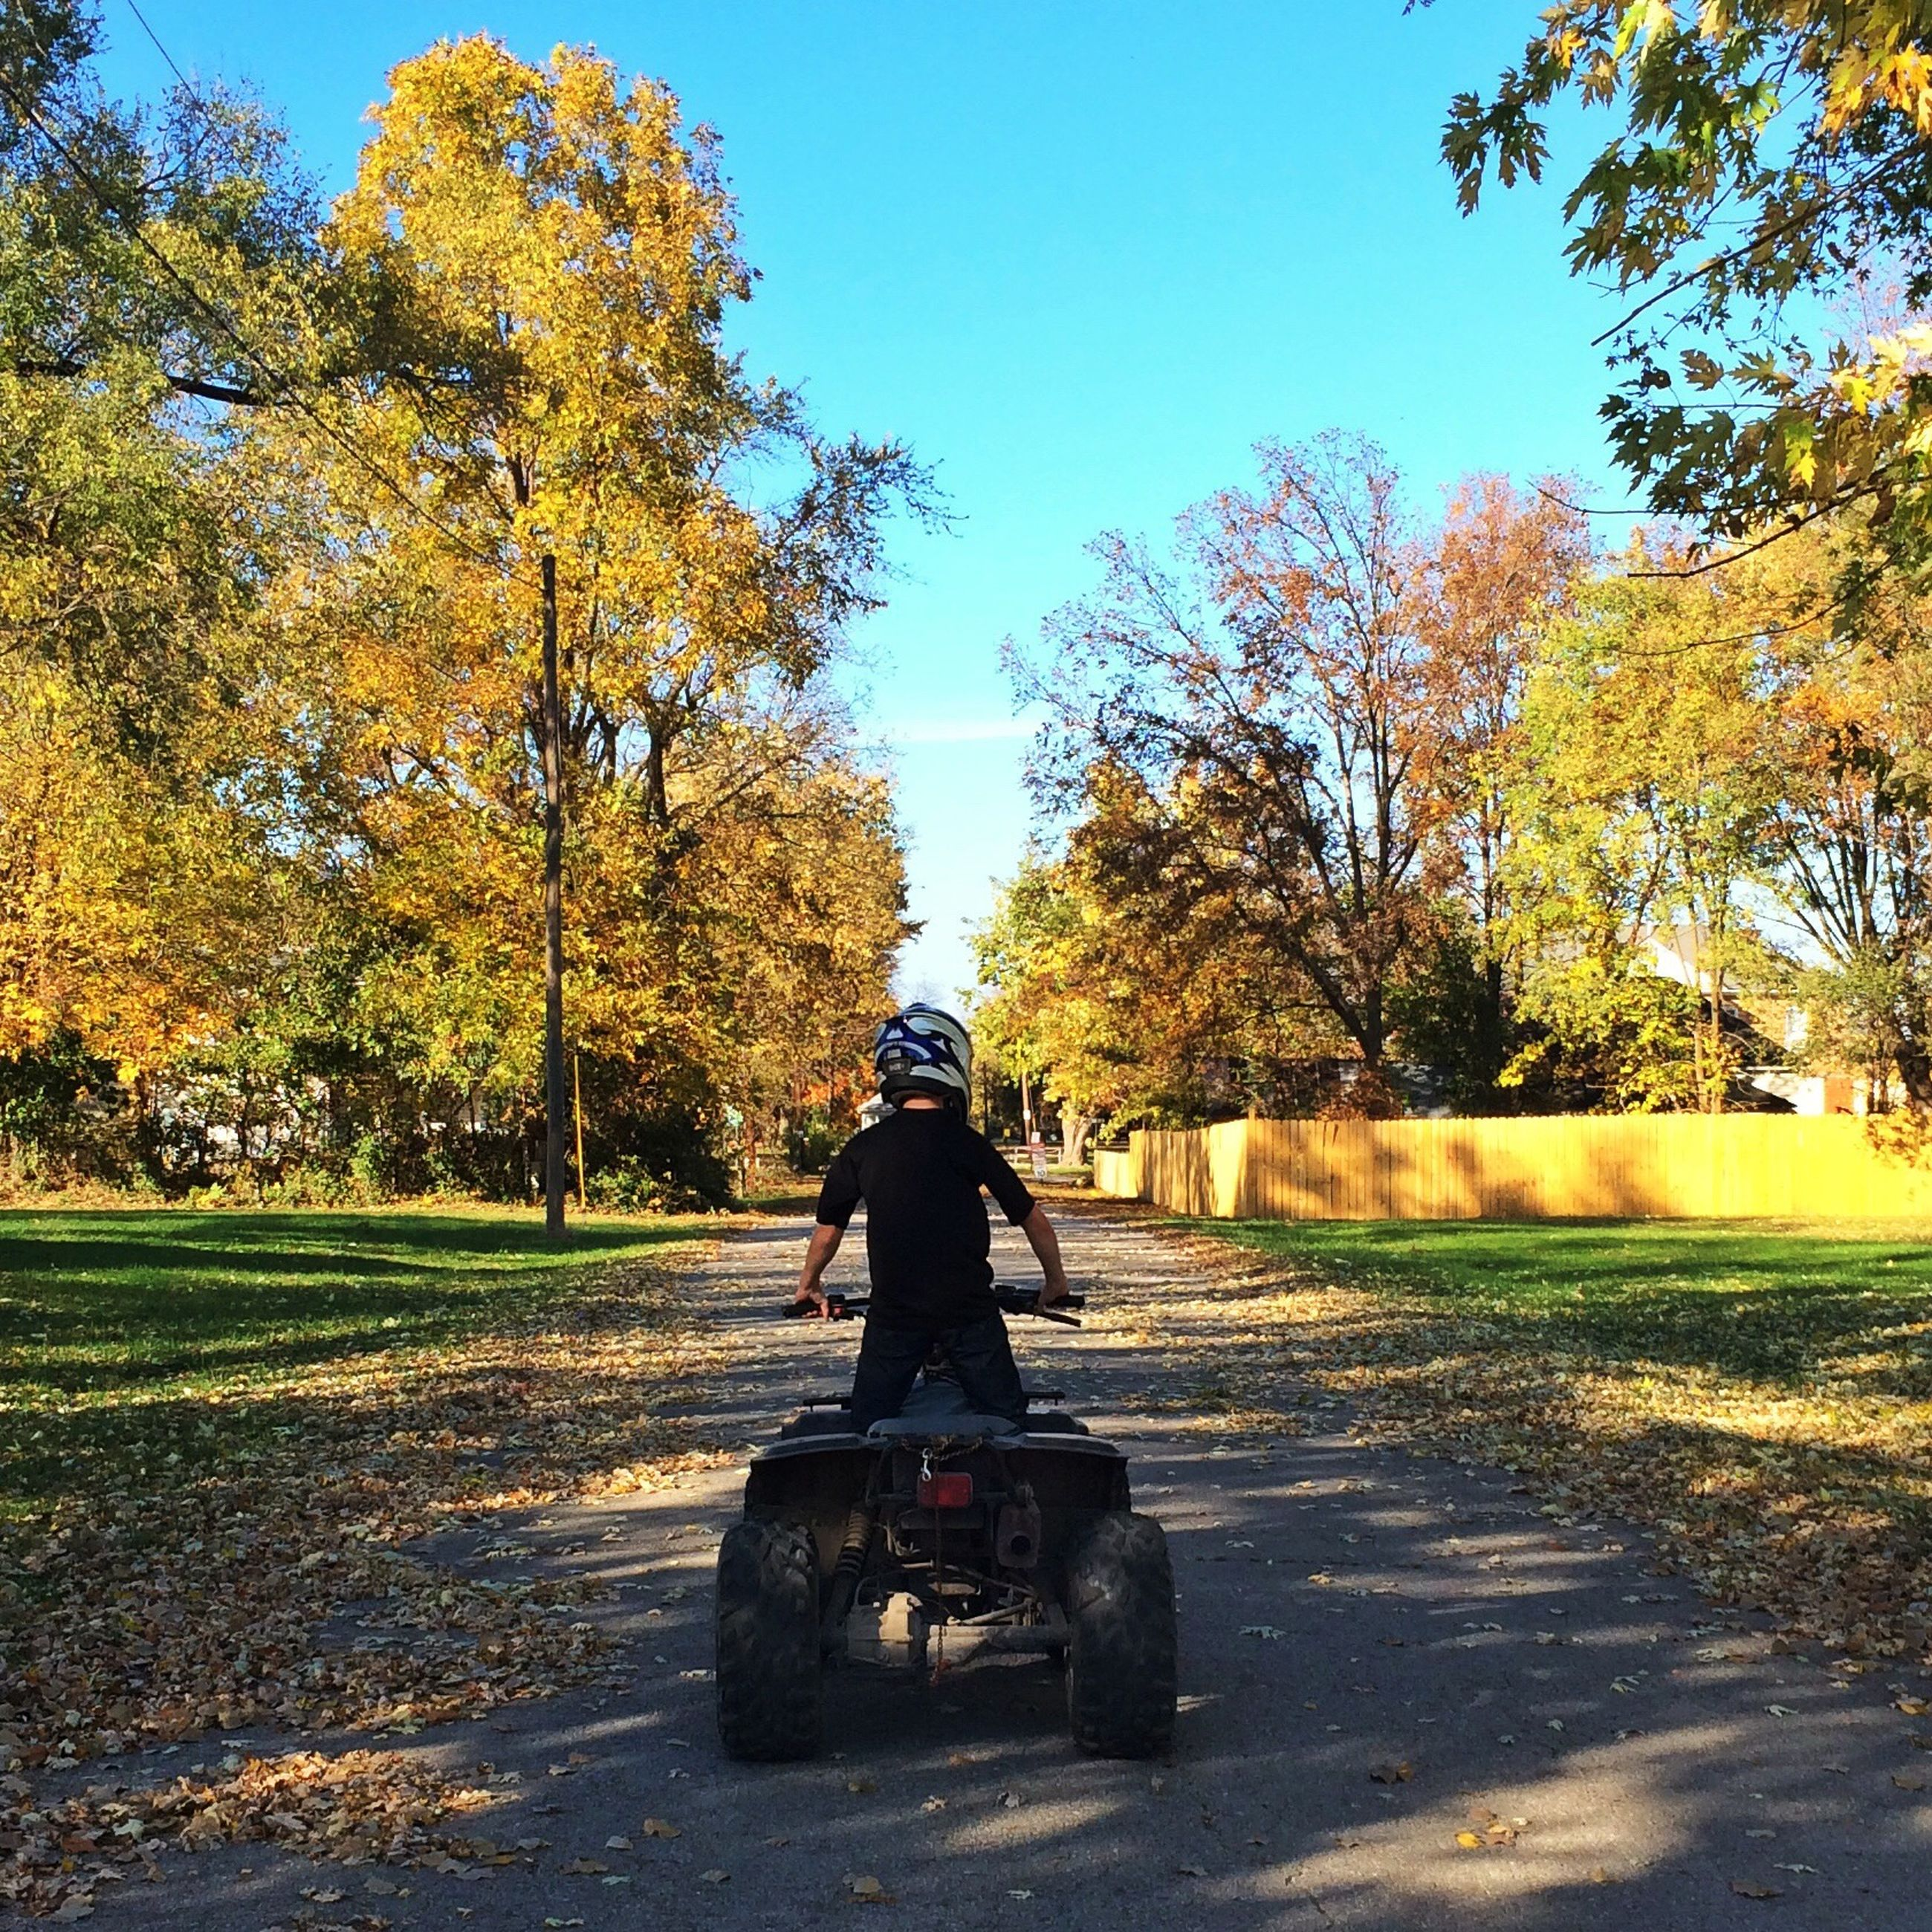 tree, clear sky, full length, lifestyles, rear view, leisure activity, men, autumn, park - man made space, grass, sunlight, road, walking, transportation, person, change, street, growth